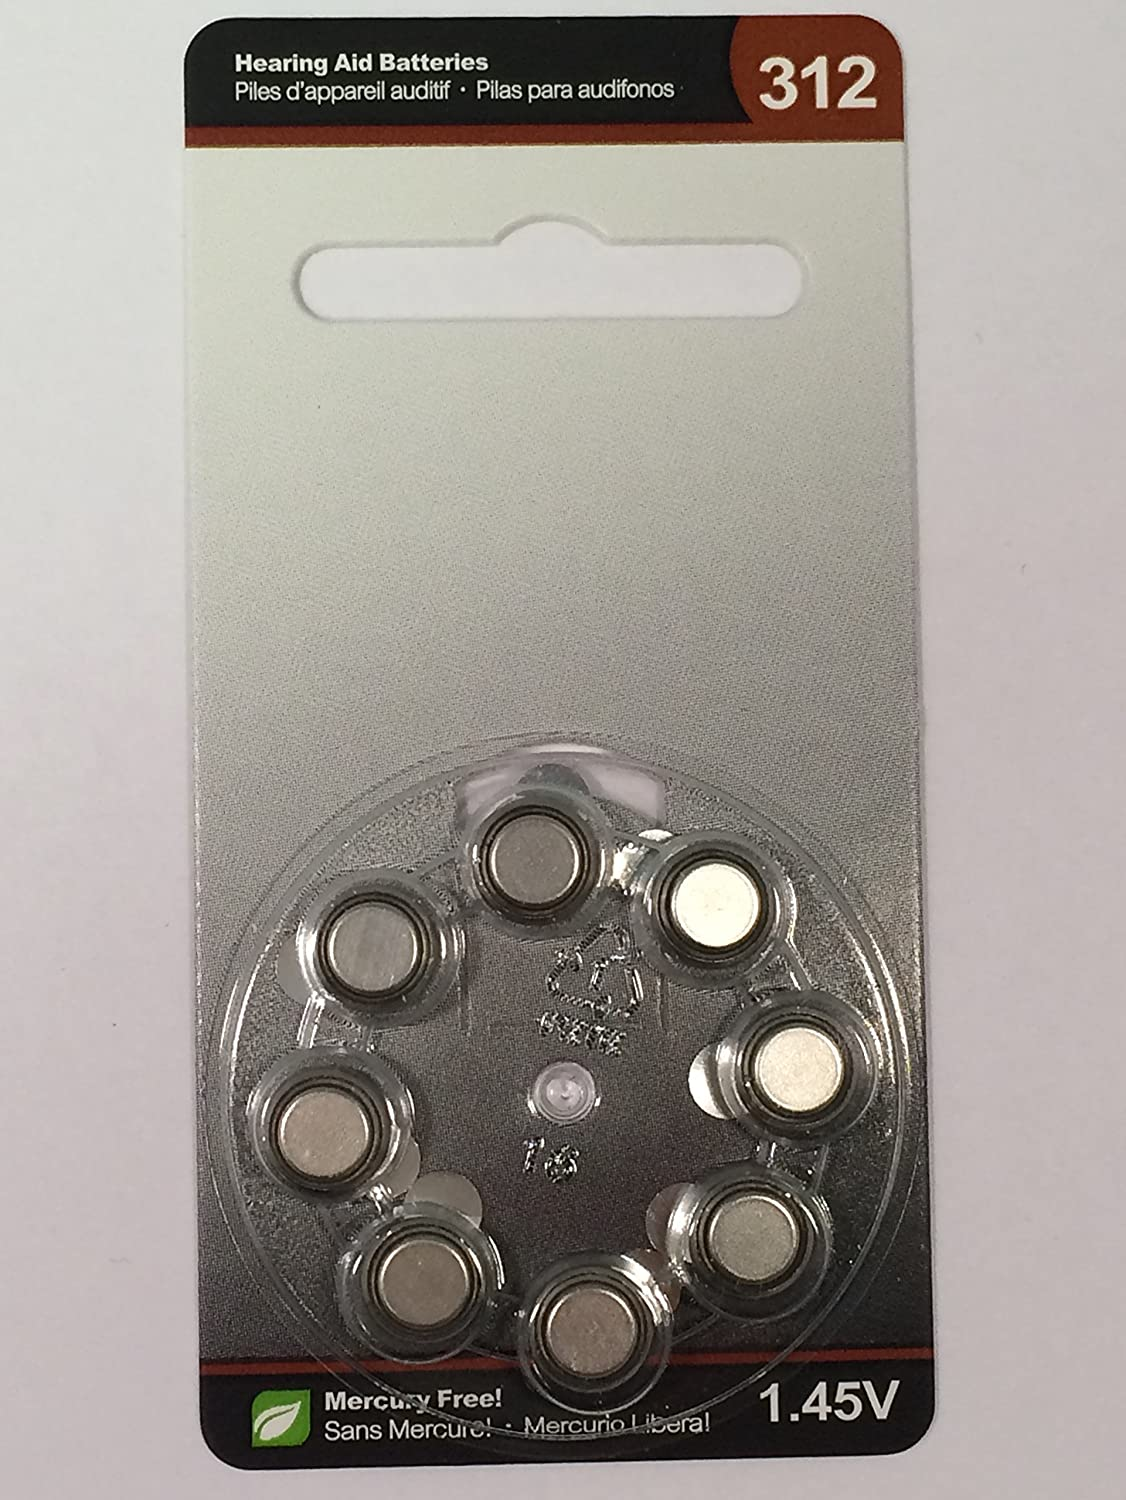 ReSound SIZE 312 Premium Hearing Aid Batteries: Brown Tab: 40 Pack (5  Cards) : Mercury Free, Size 312